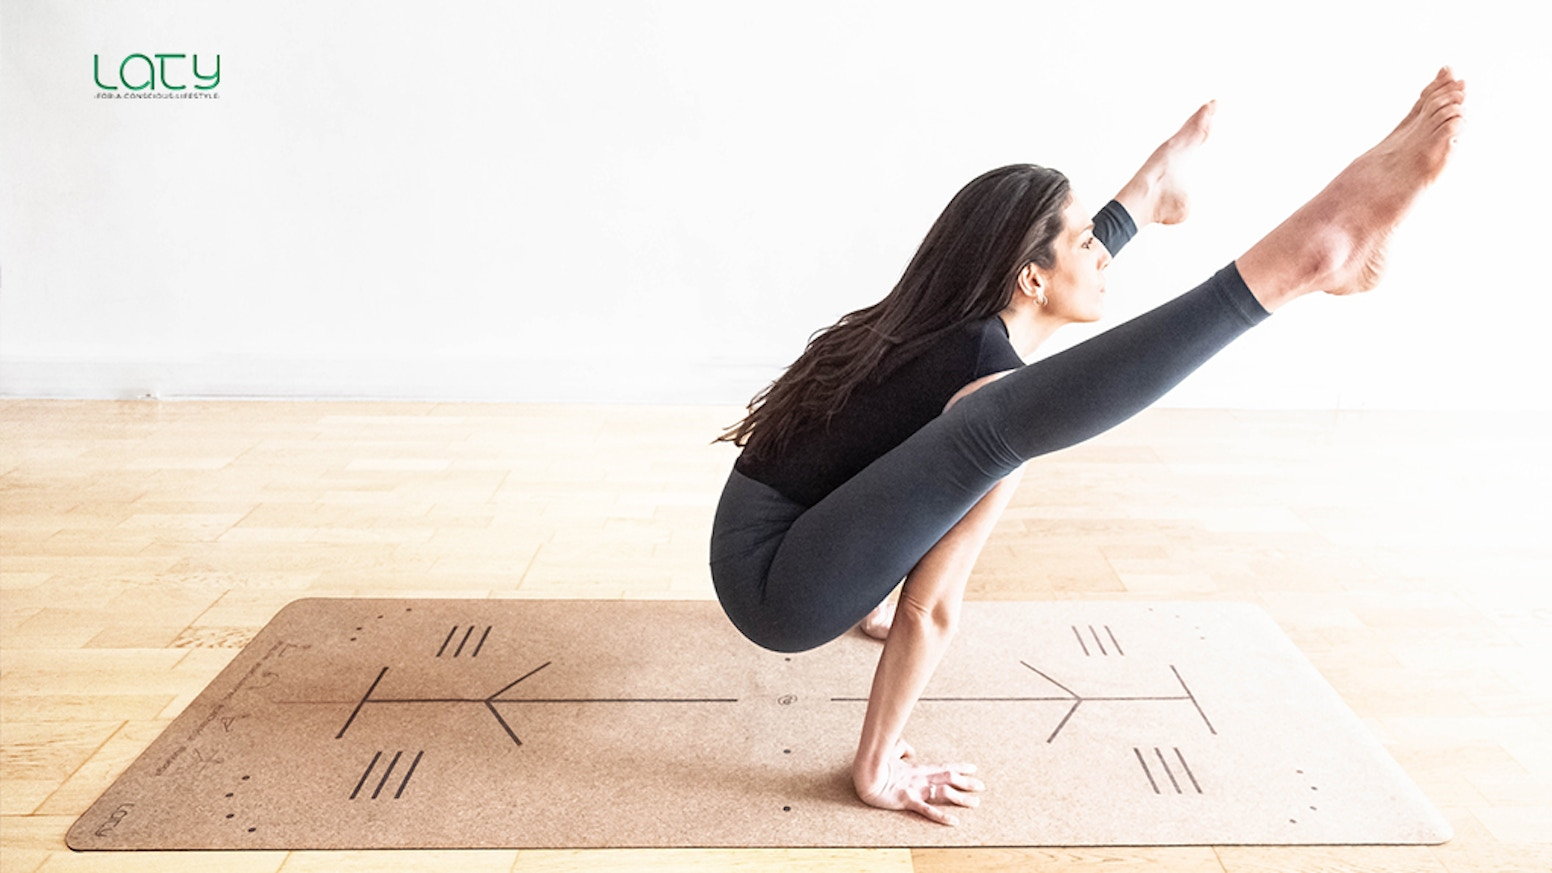 The BHUMI MAT - The Only Mat You'll Need for your Well-being Journey; World's First Cork Yoga Mat with Alignment Cues